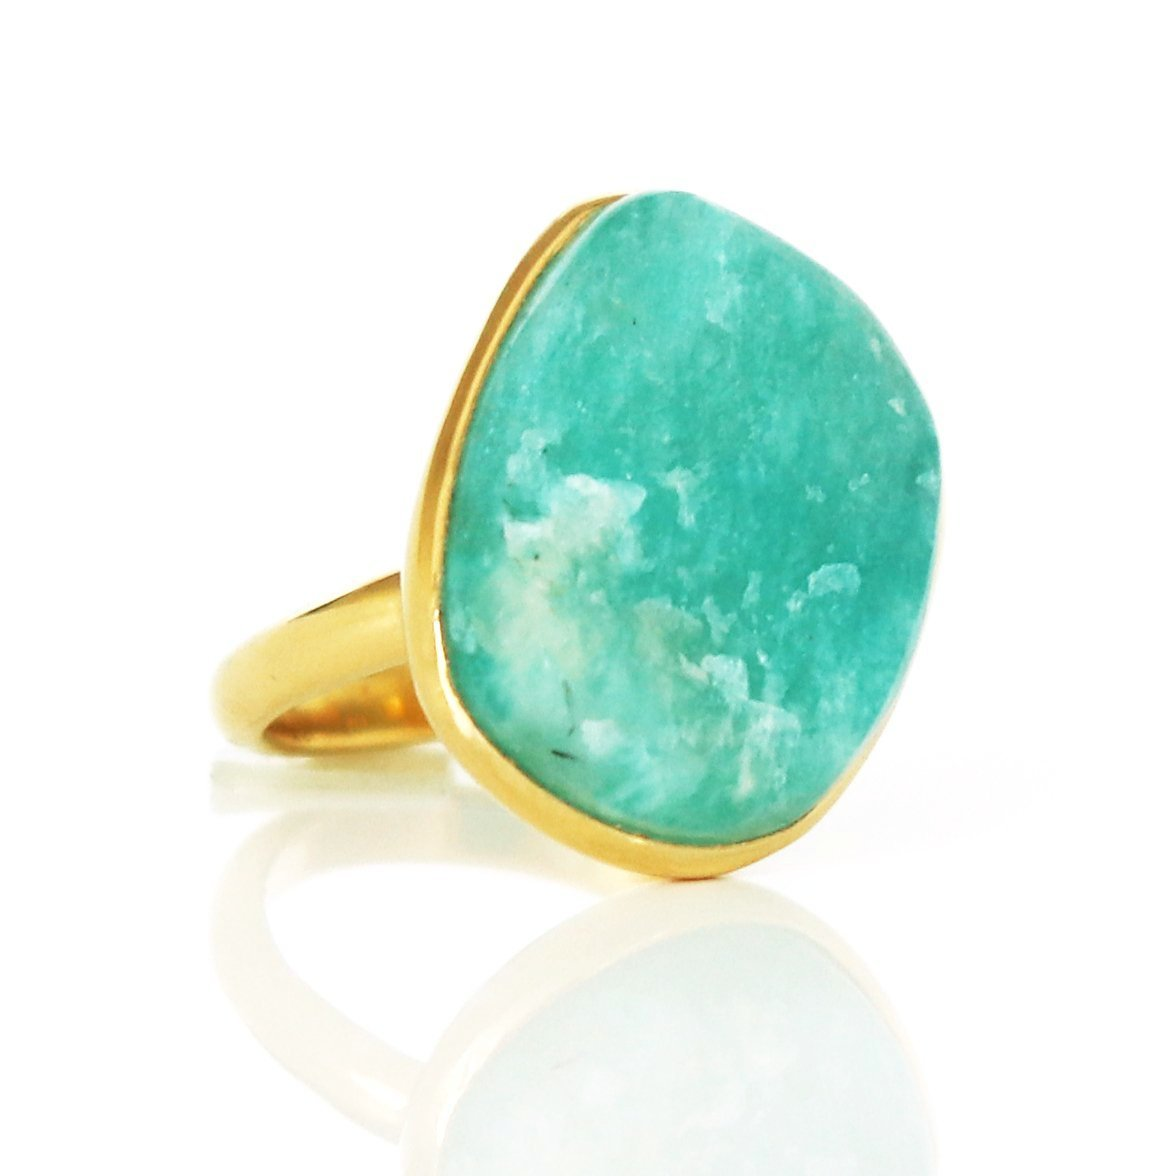 DARING RING - RAW AQUA AMAZONITE & GOLD - SO PRETTY CARA COTTER